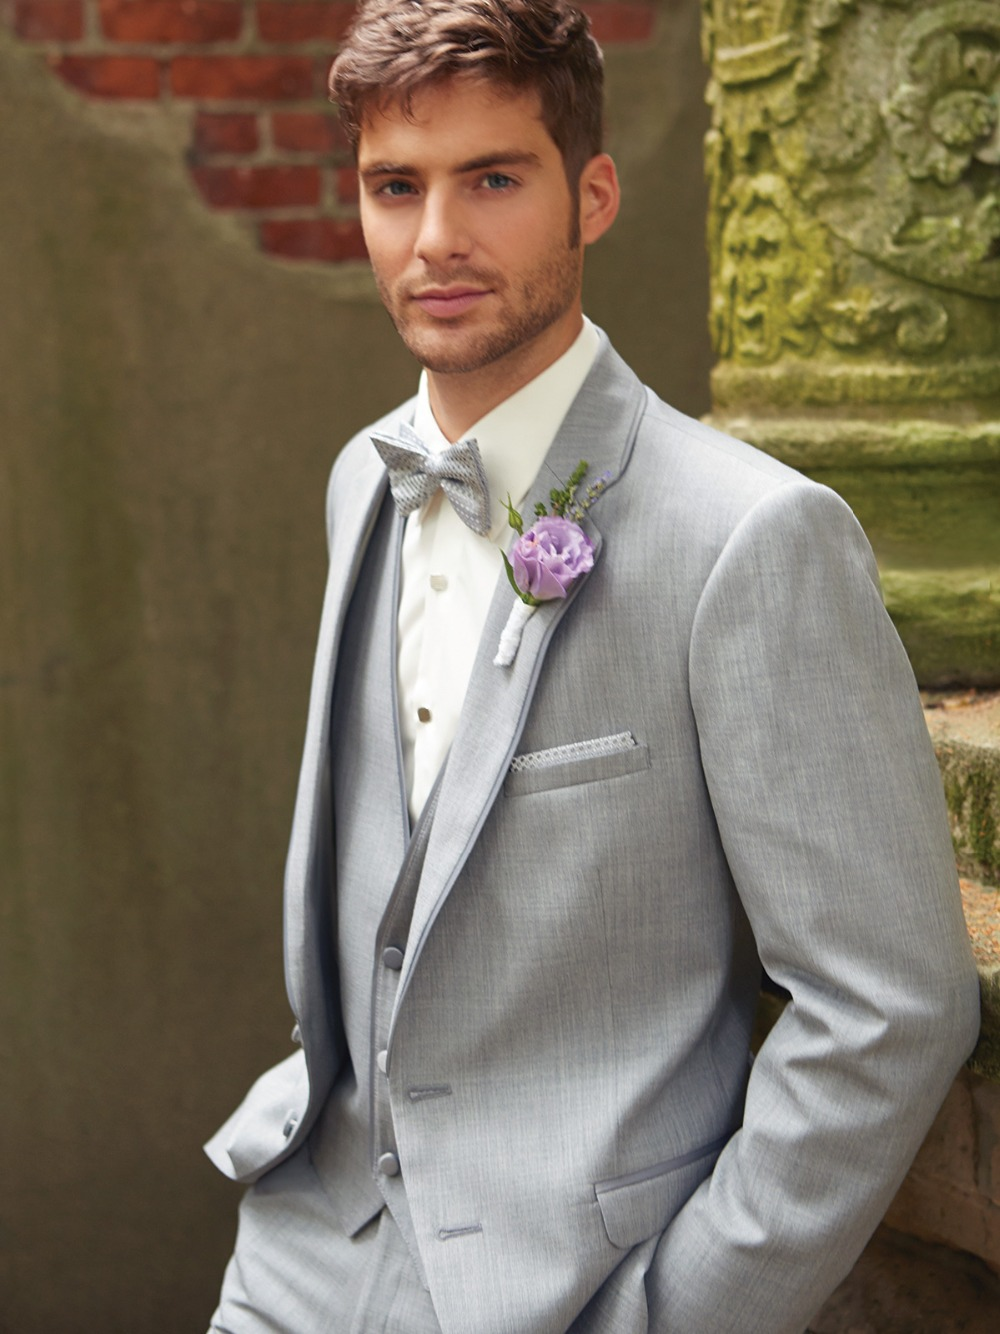 silver, suit: Order a unique discounted suit by style and quality from report2day.ml We also provide tuxedos, blazers, jackets and accessories. Shop right away!